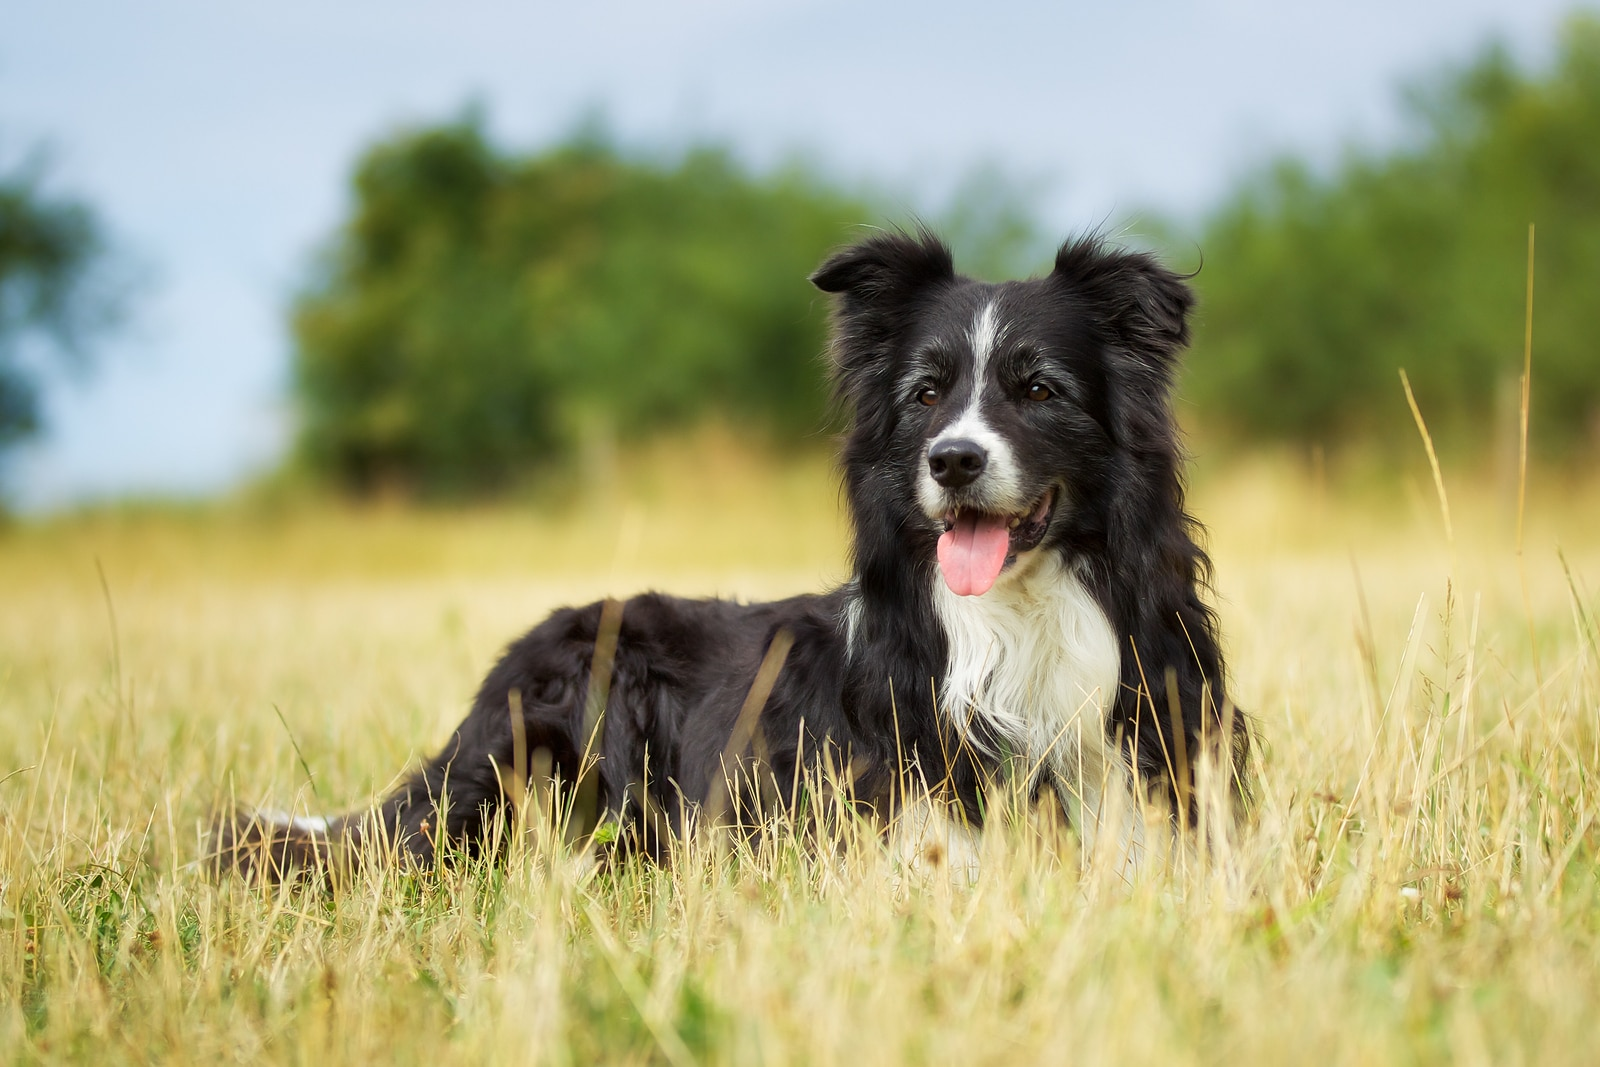 Black and white border collie laying in a farm field.